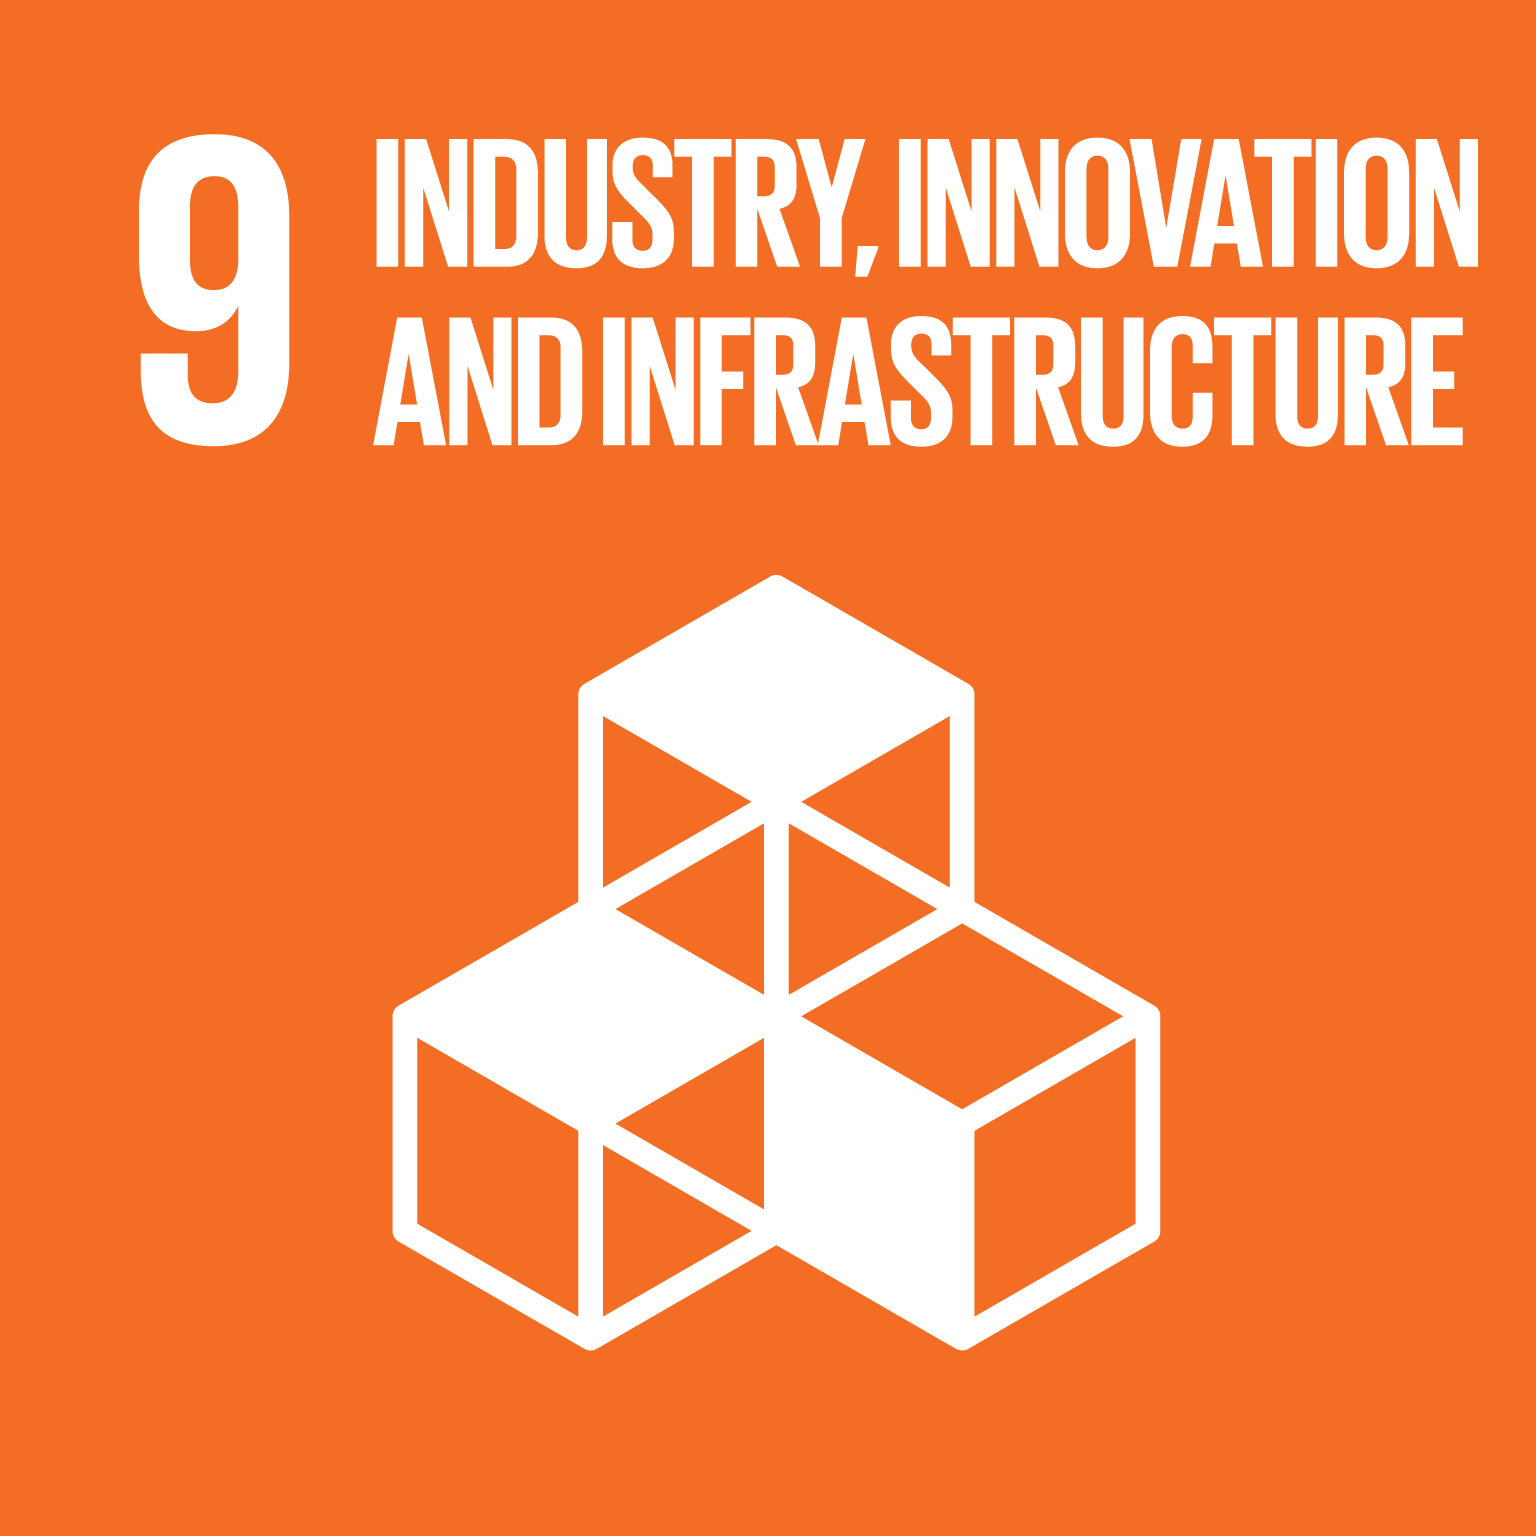 - Critical, affordable infrastructure is a priority for Africa's development. Ventures which develop technological innovations which improve infrastructure, better the livelihoods of the poor, and have a positive impact on the environment is a focus for Earth Capital.